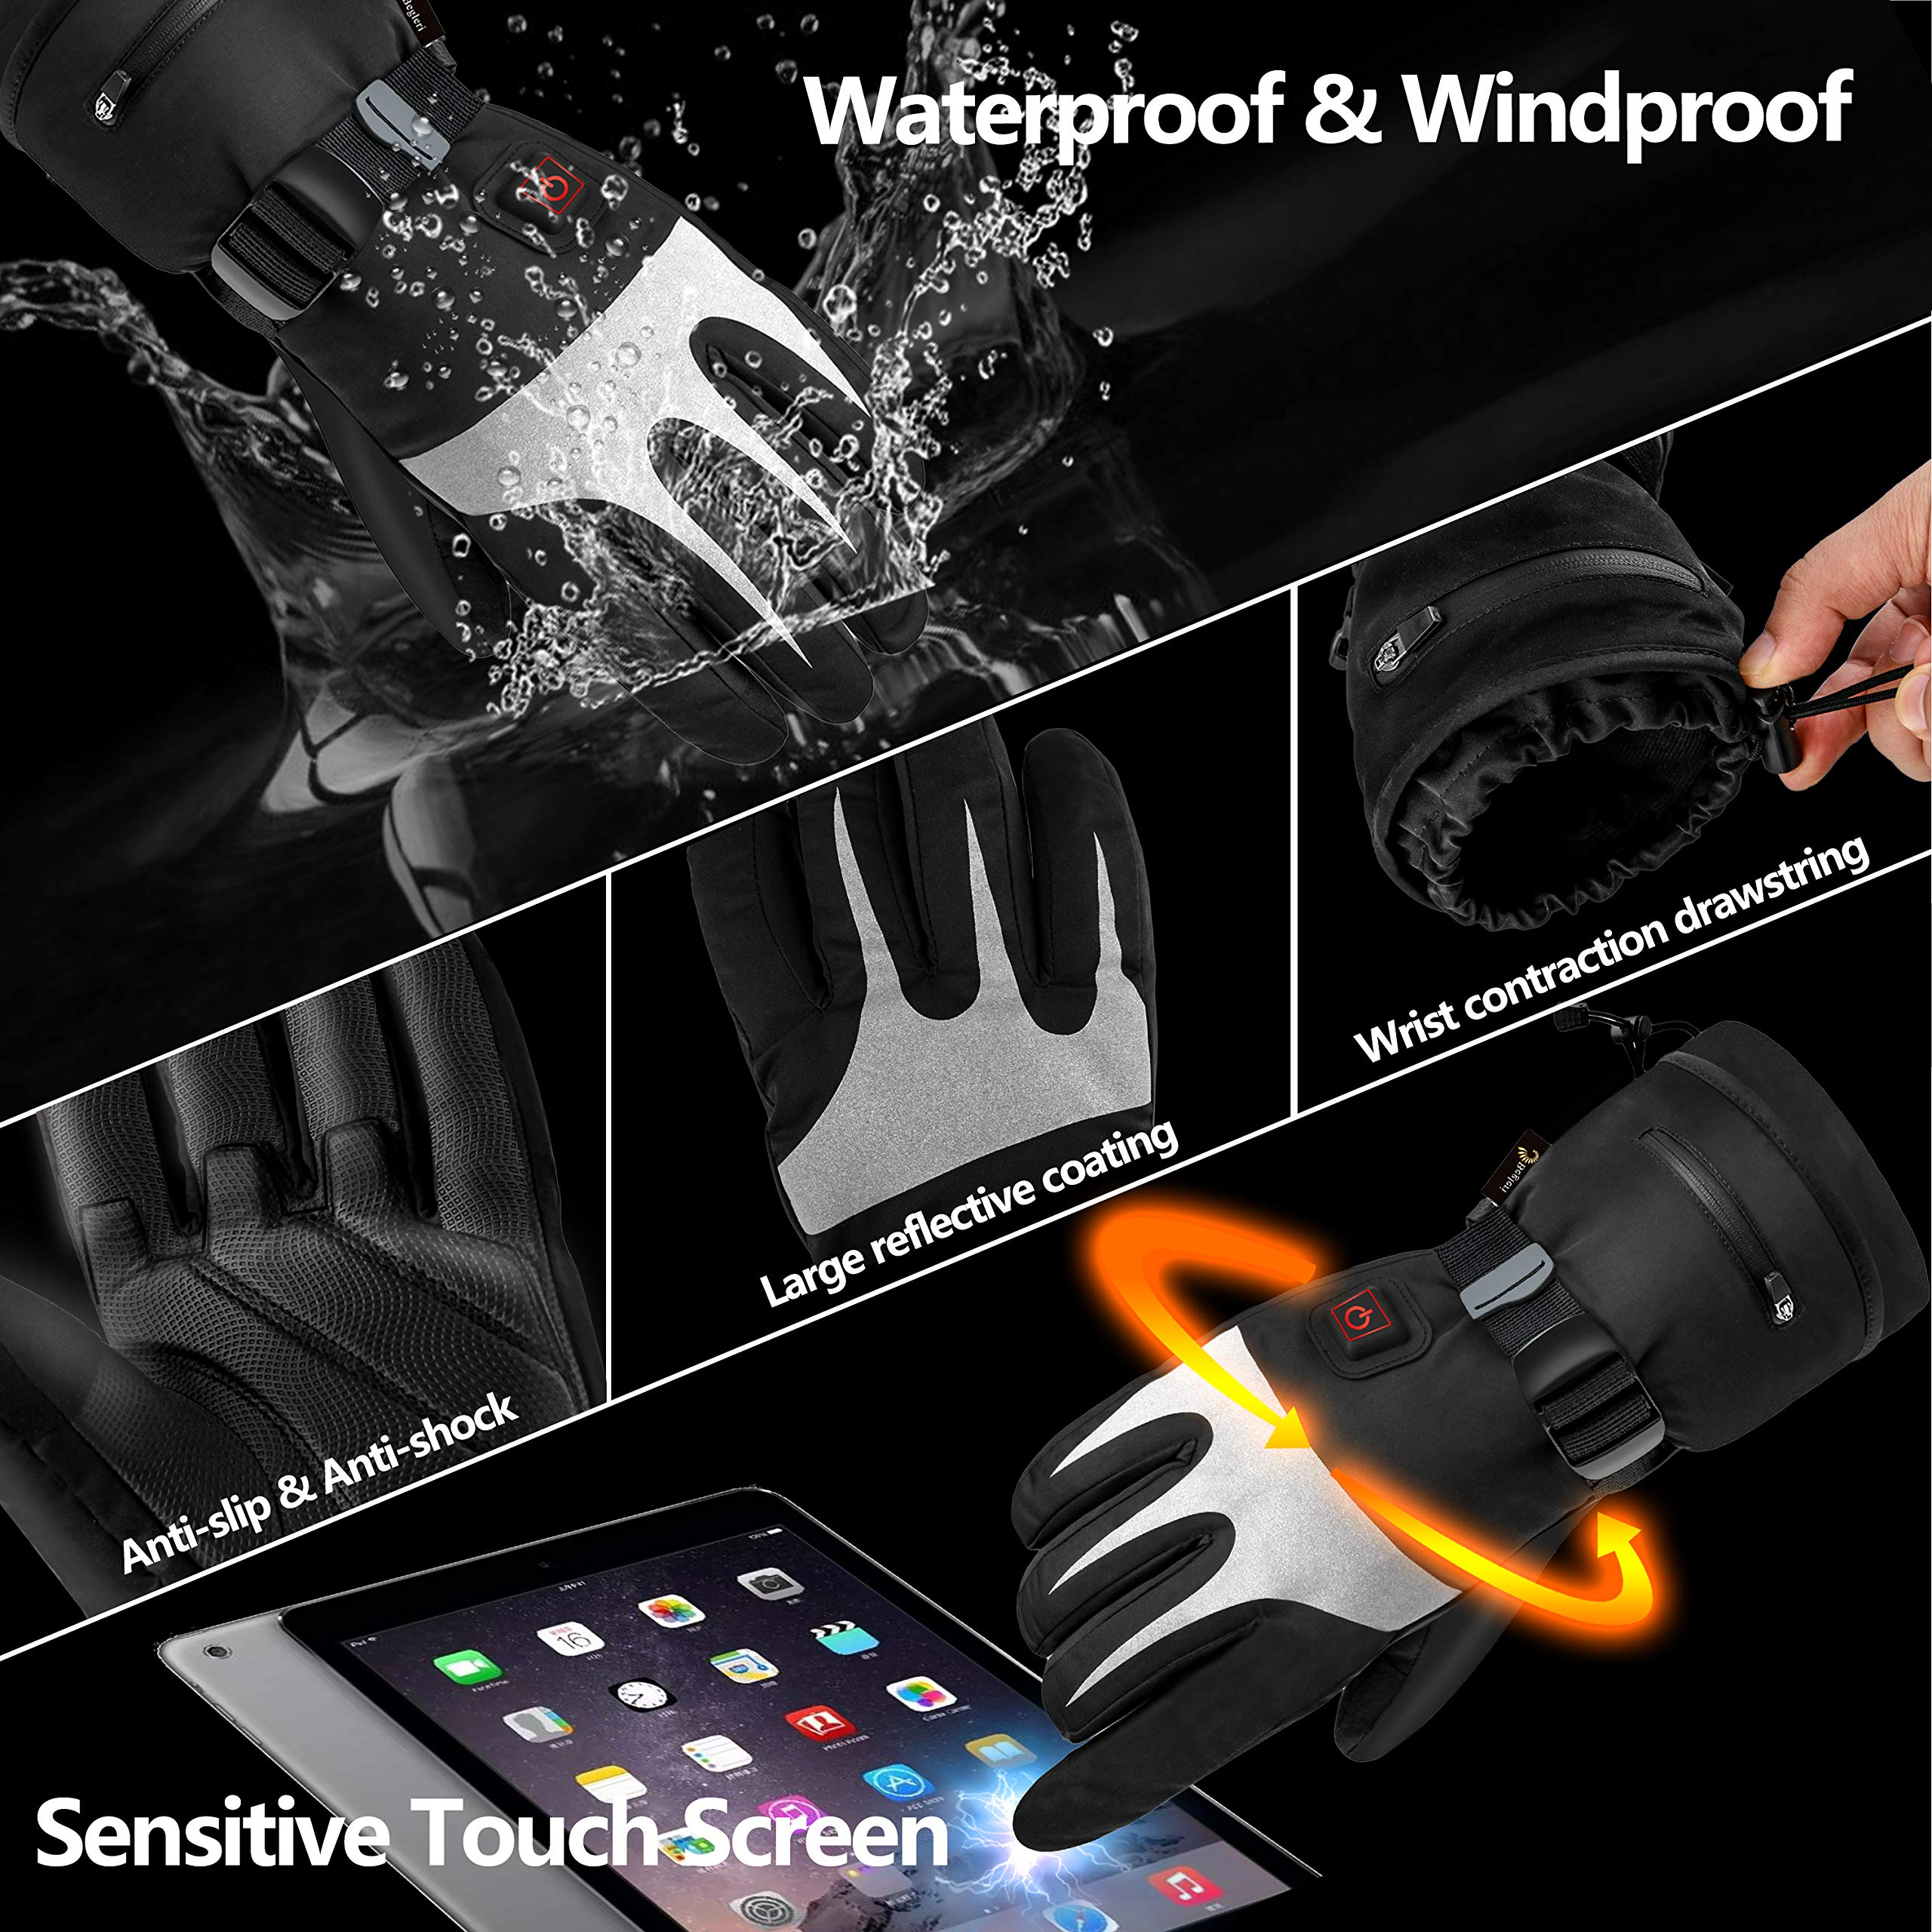 Heated gloves for Men Women,Electric heated gloves|Heated motorcycle gloves| Heated Ski Gloves